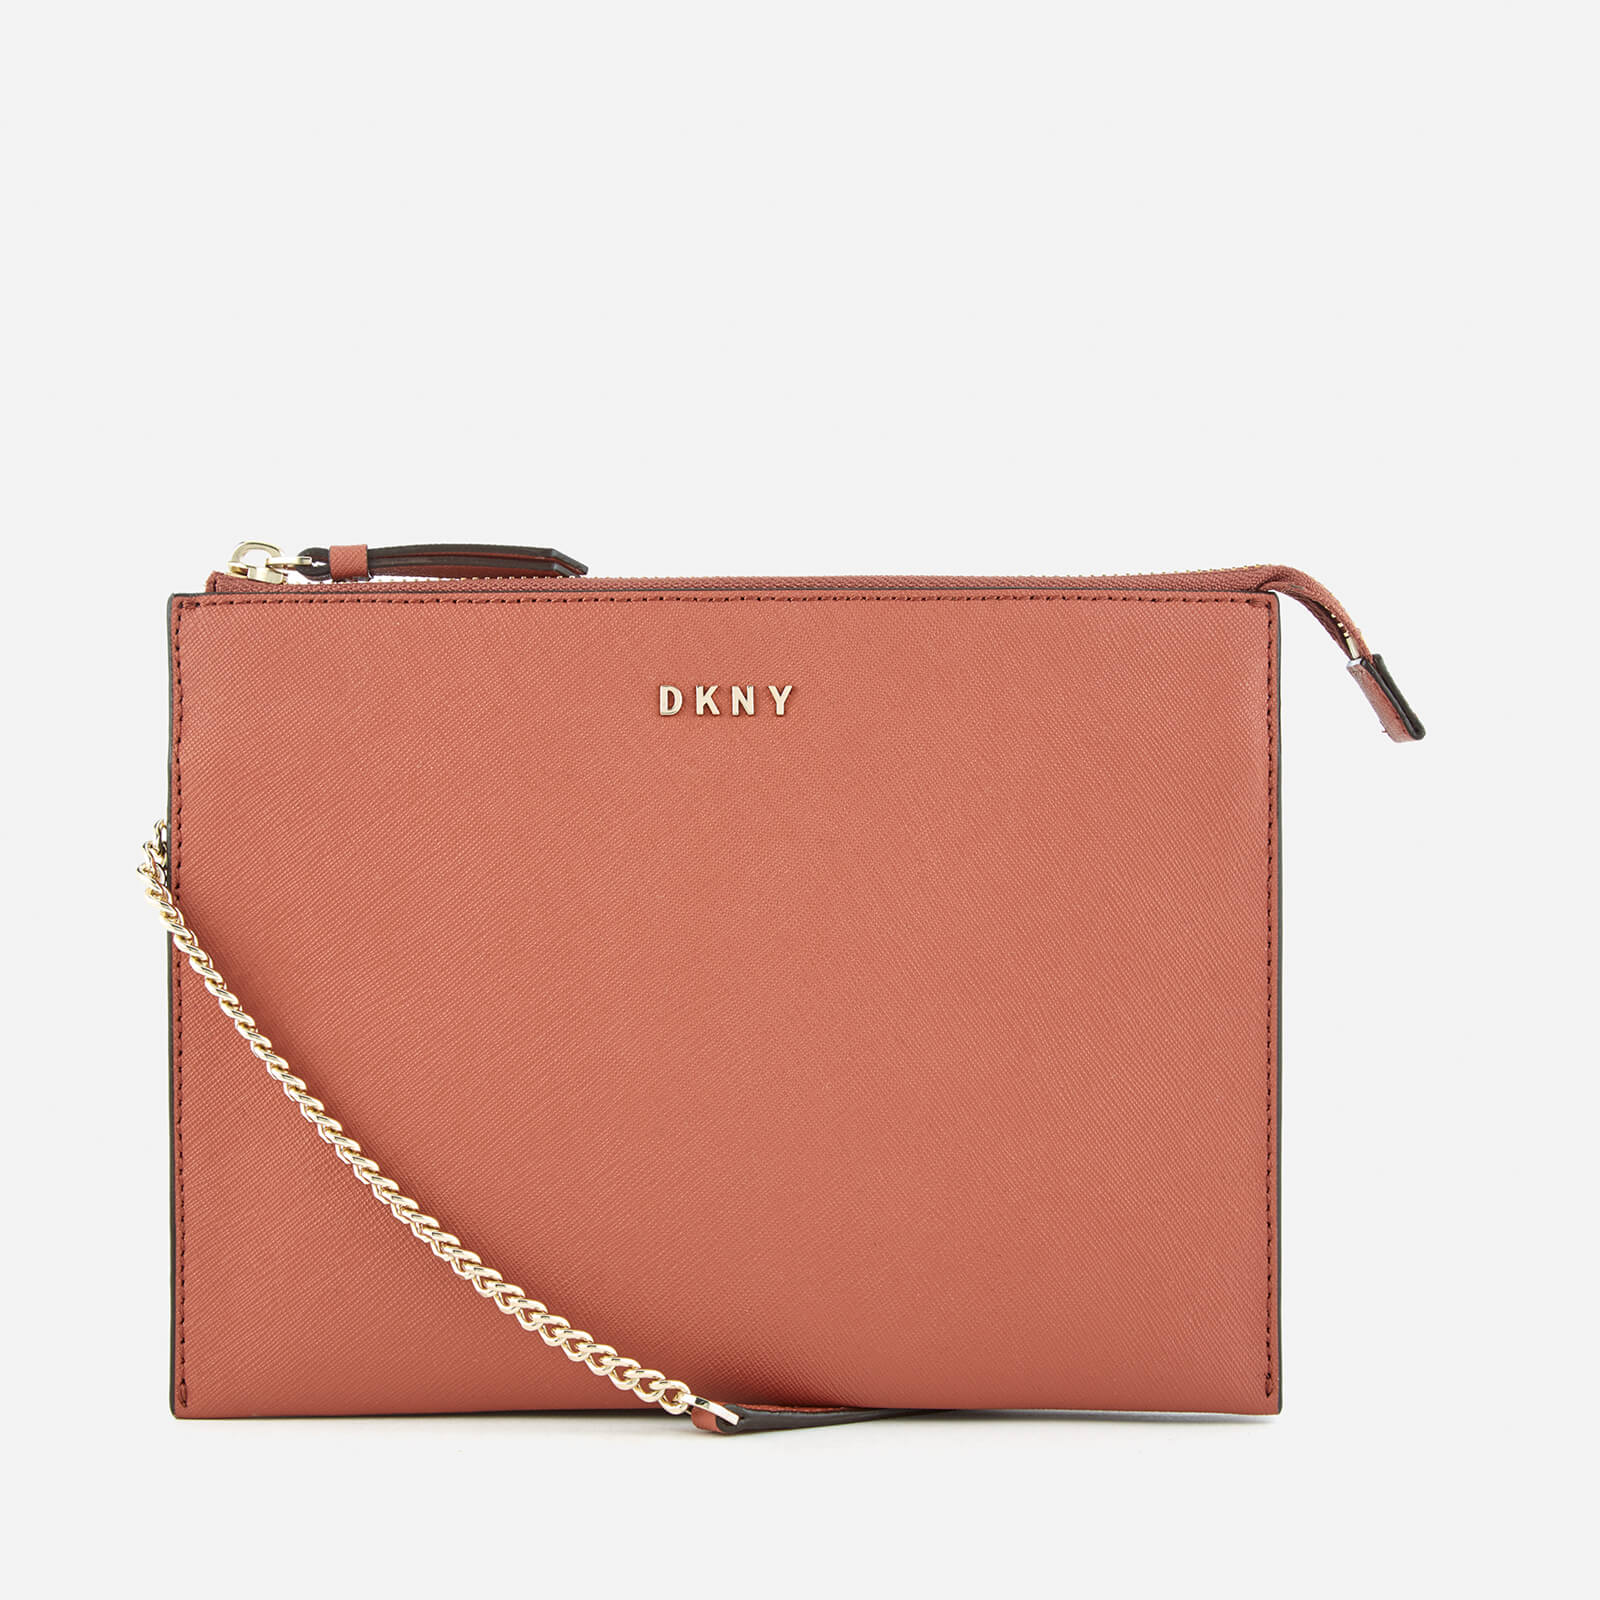 80b6f6125ad DKNY Women s Bryant Park Flat Top Zip Cross Body Bag - Terracotta - Free UK  Delivery over £50